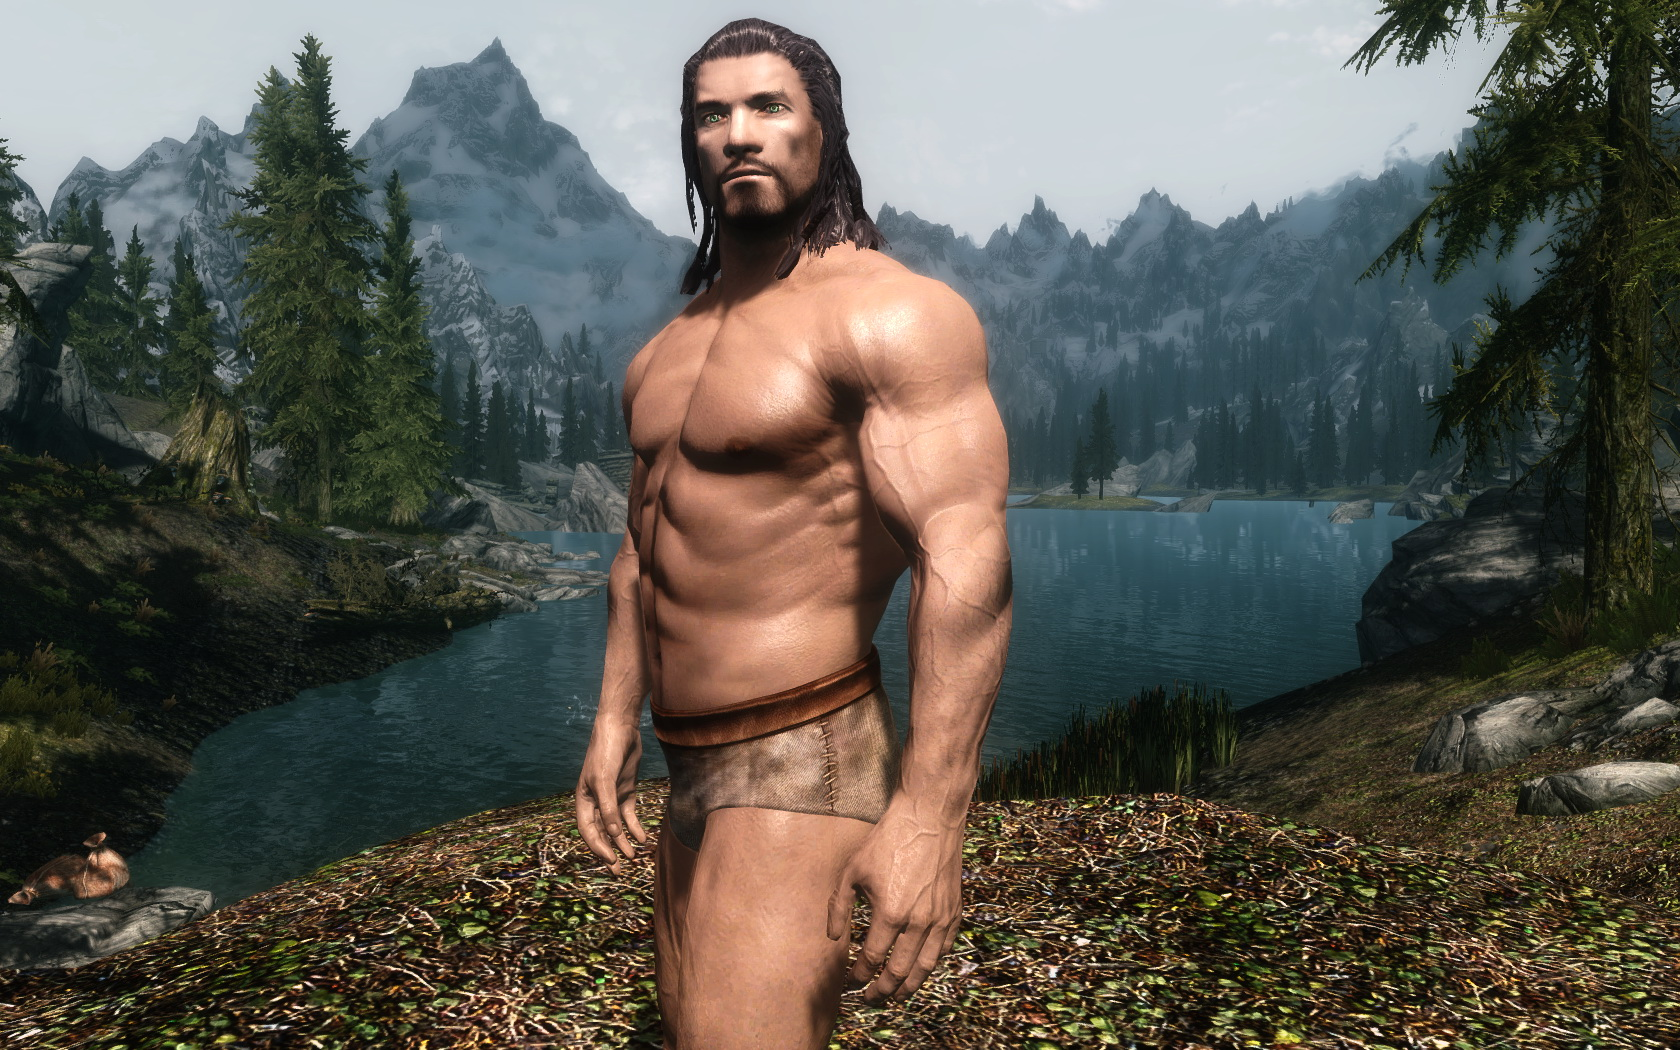 Skyrim nude male photo erotica hd pornstar